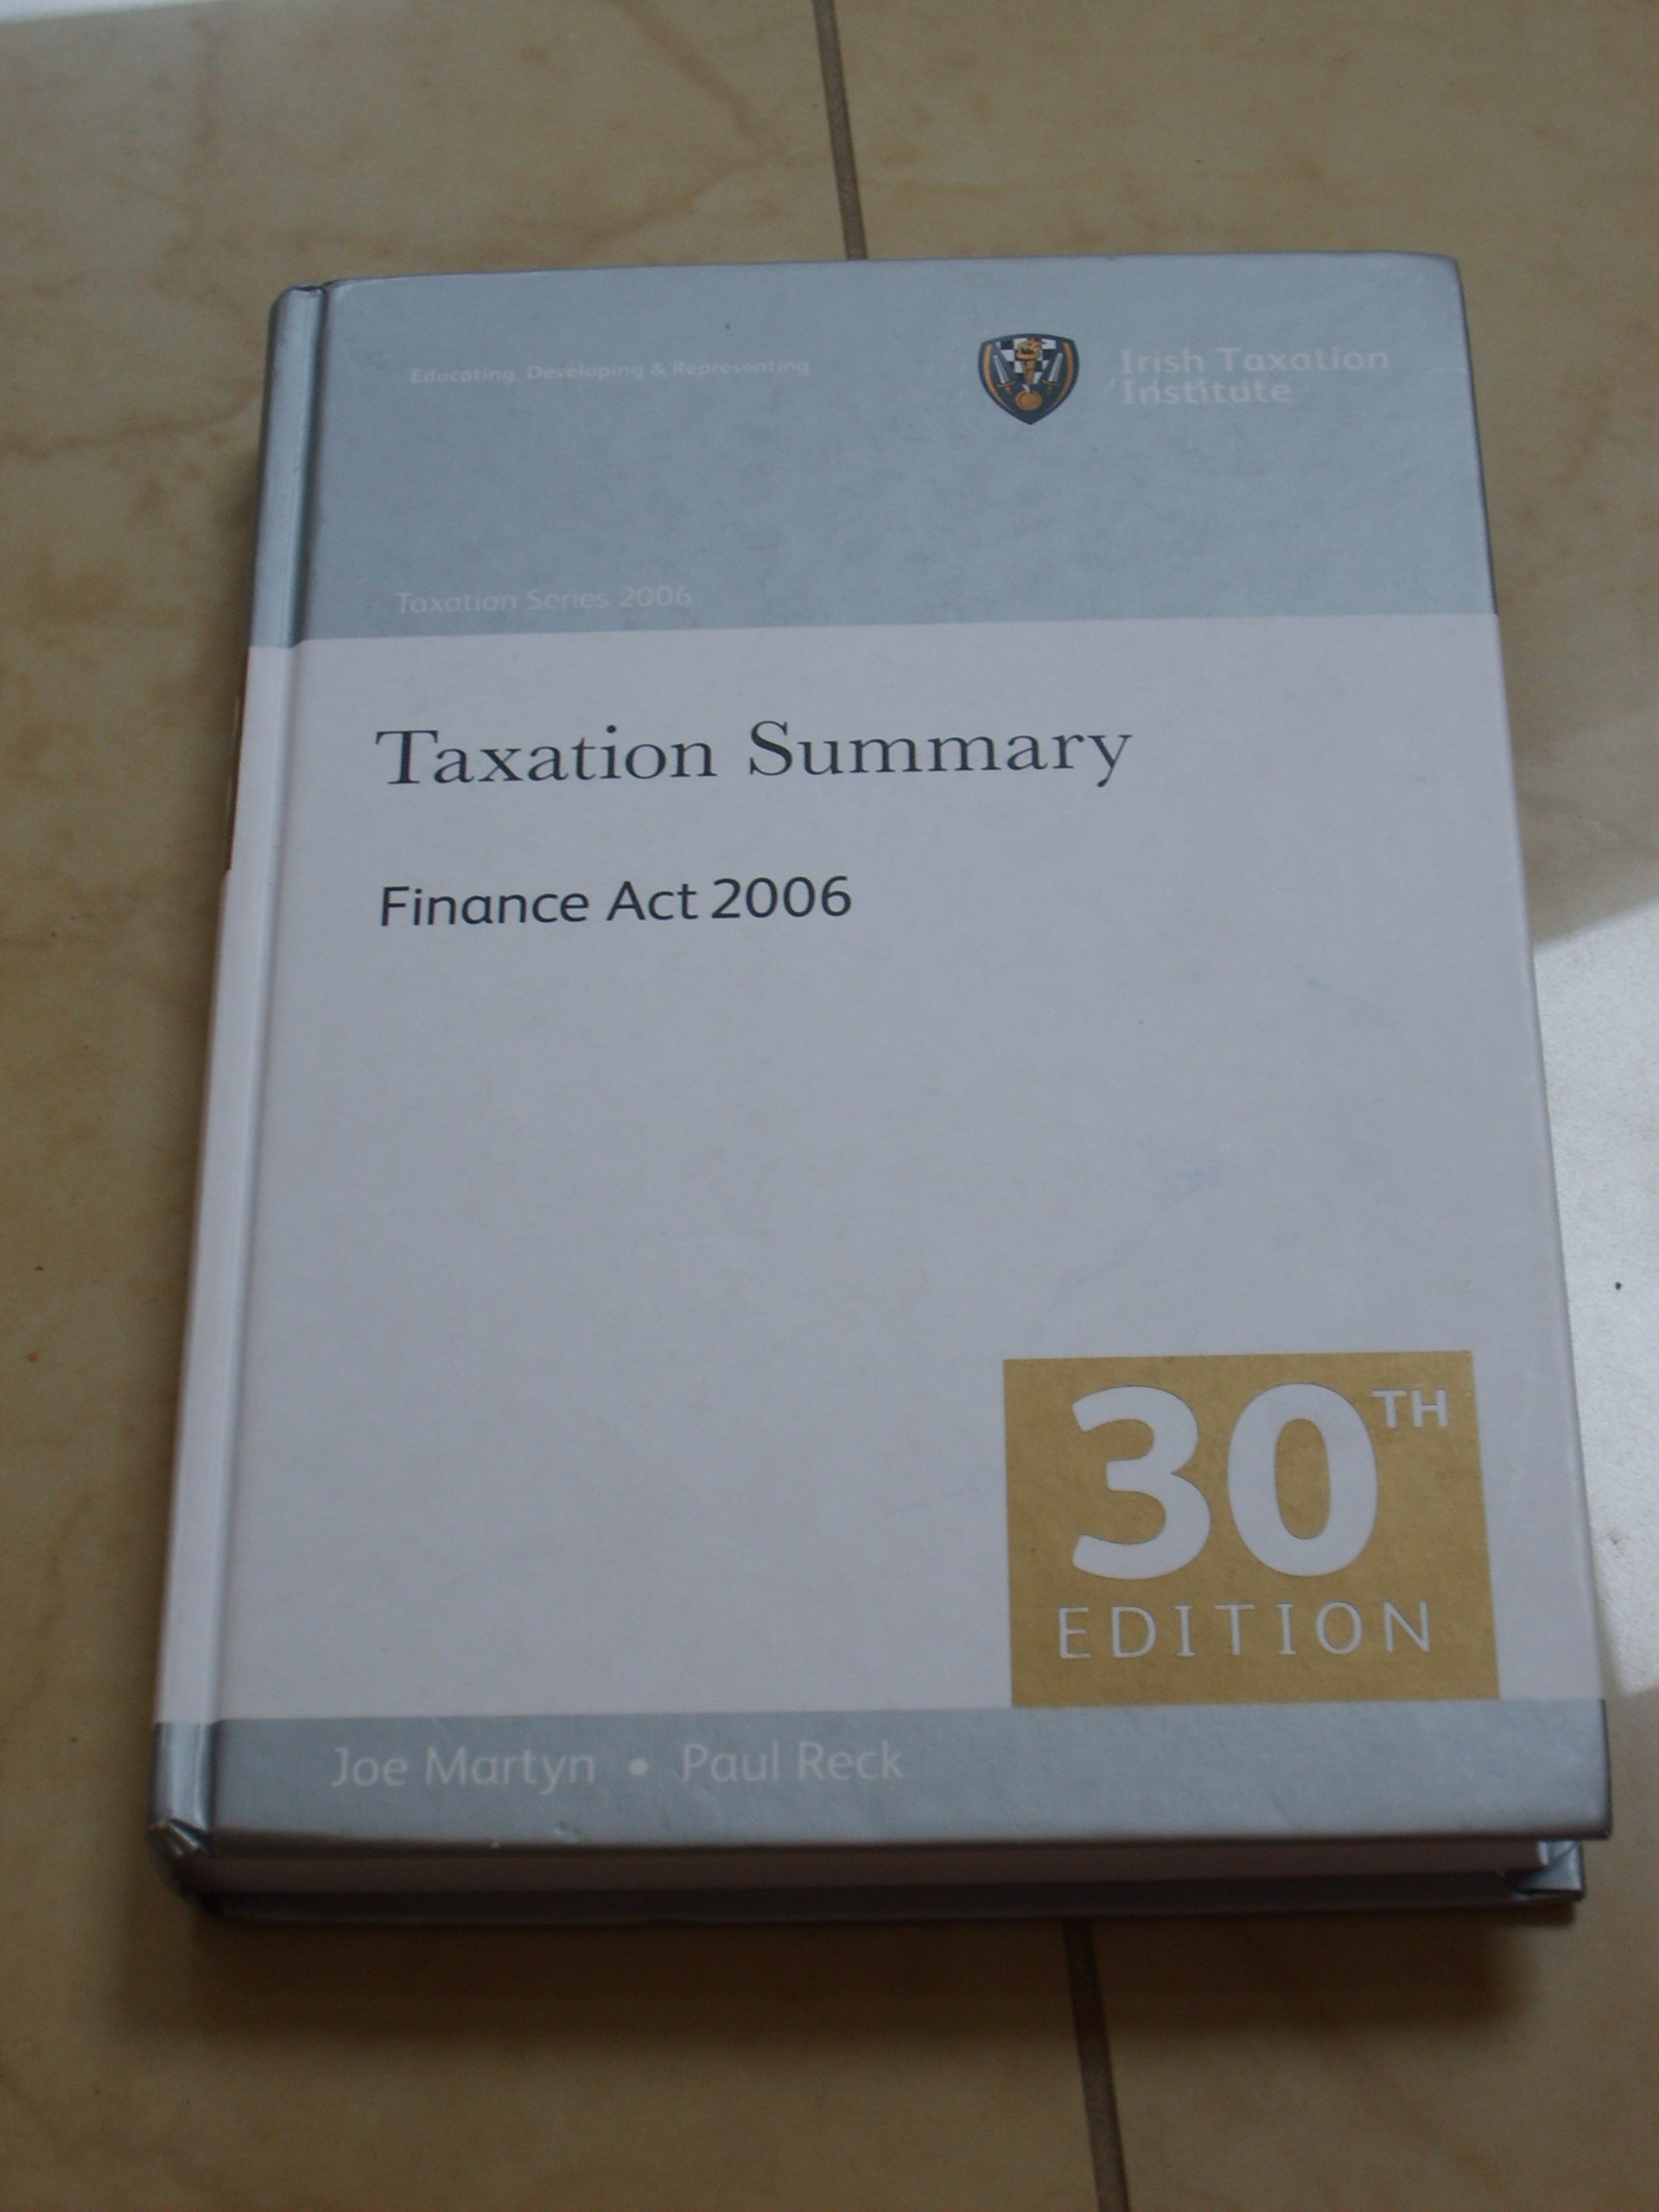 FOR SALE: Taxation Summary Finance Act 2006 (30th Edition)